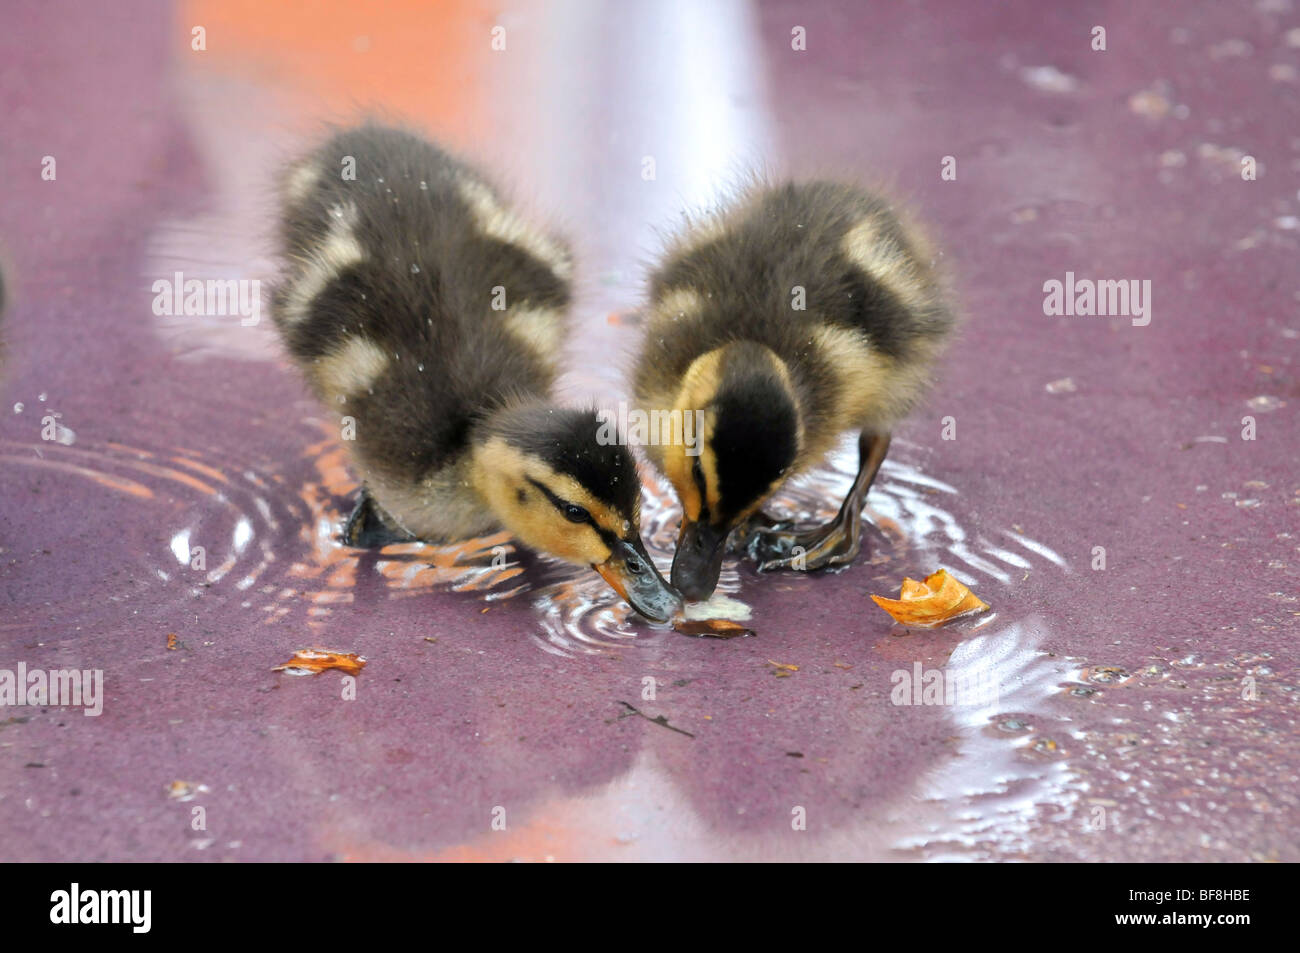 Two Mallard ducklings eating from shallow water Stock Photo